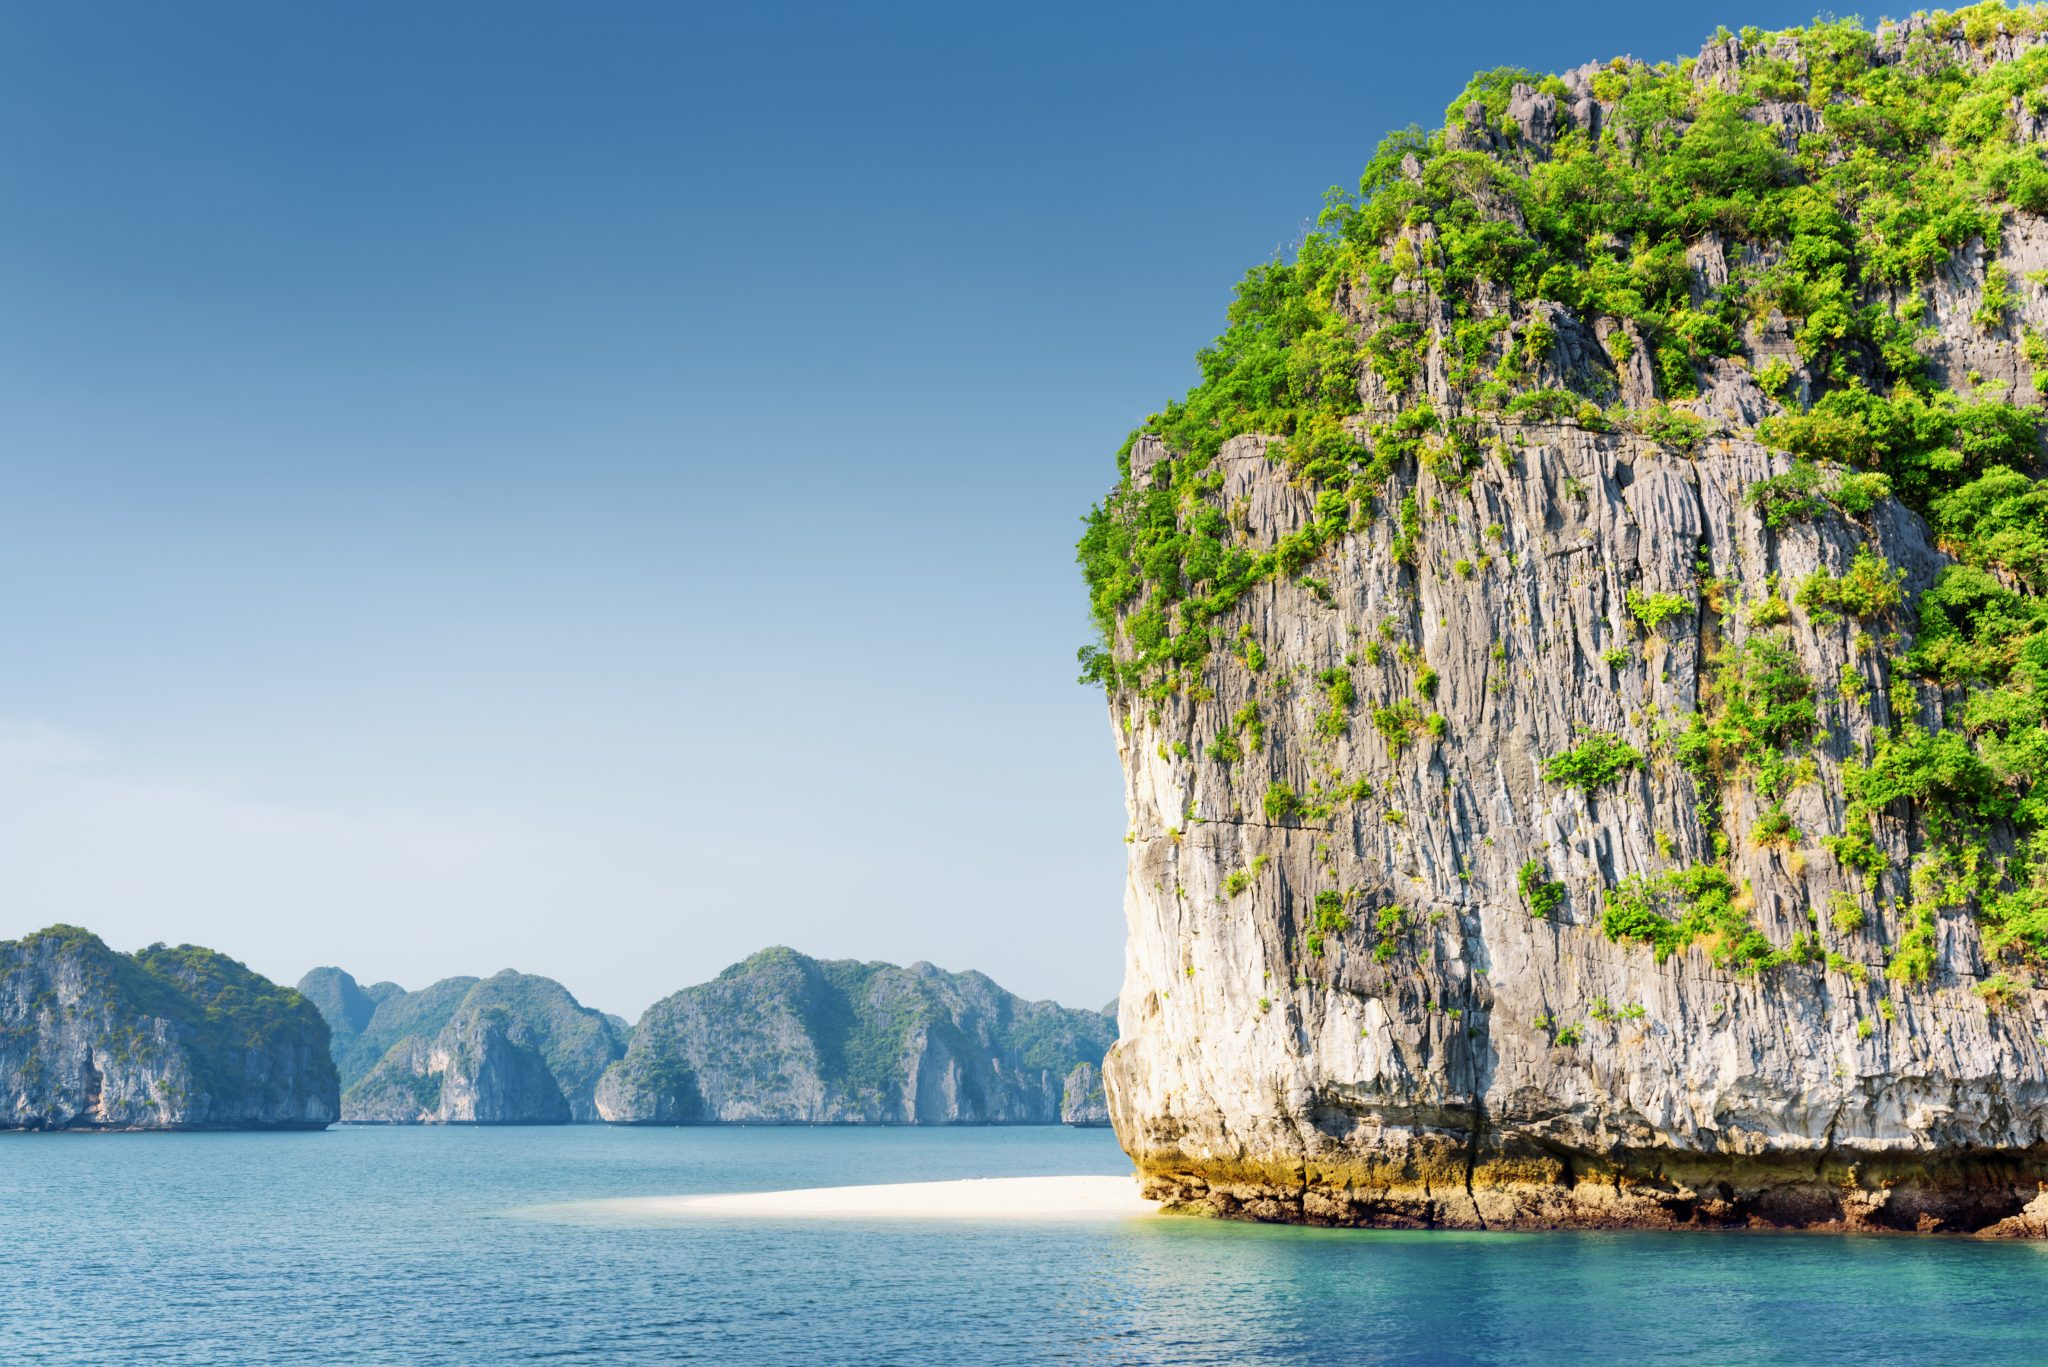 Explore Ha Long Bay With A Self-Guided Day Tour - Baolau